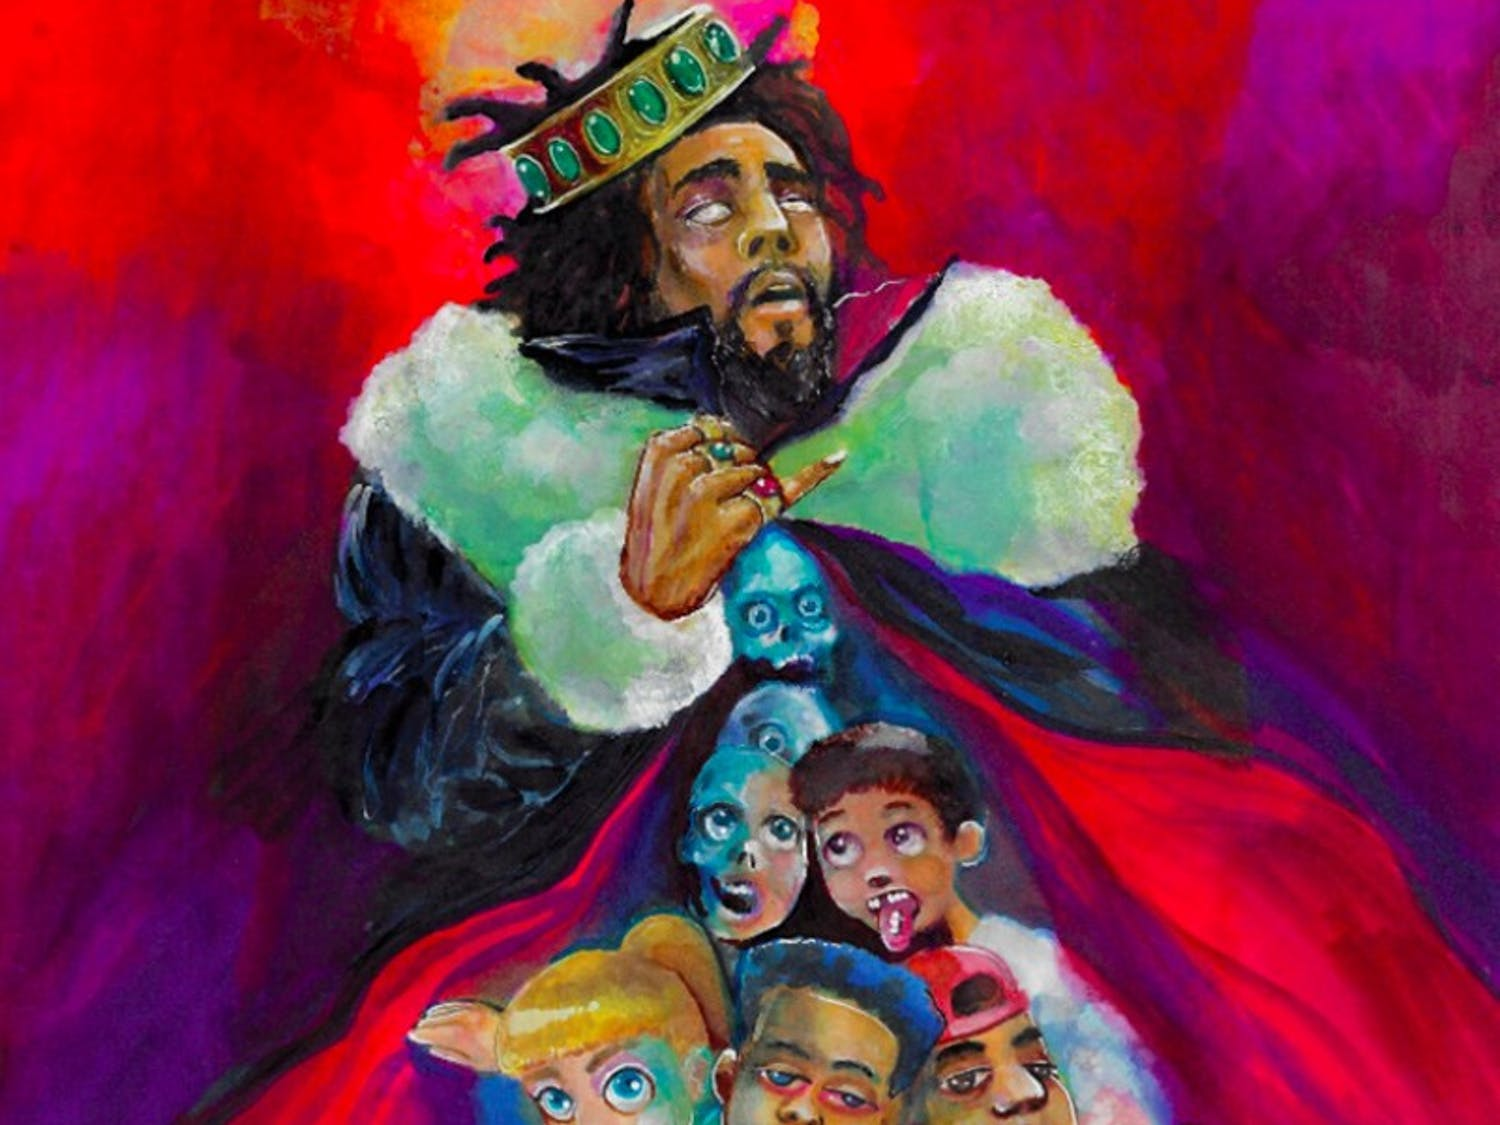 J. Cole's newest record discusses topics such as the weight of addiction and finding love through social media.